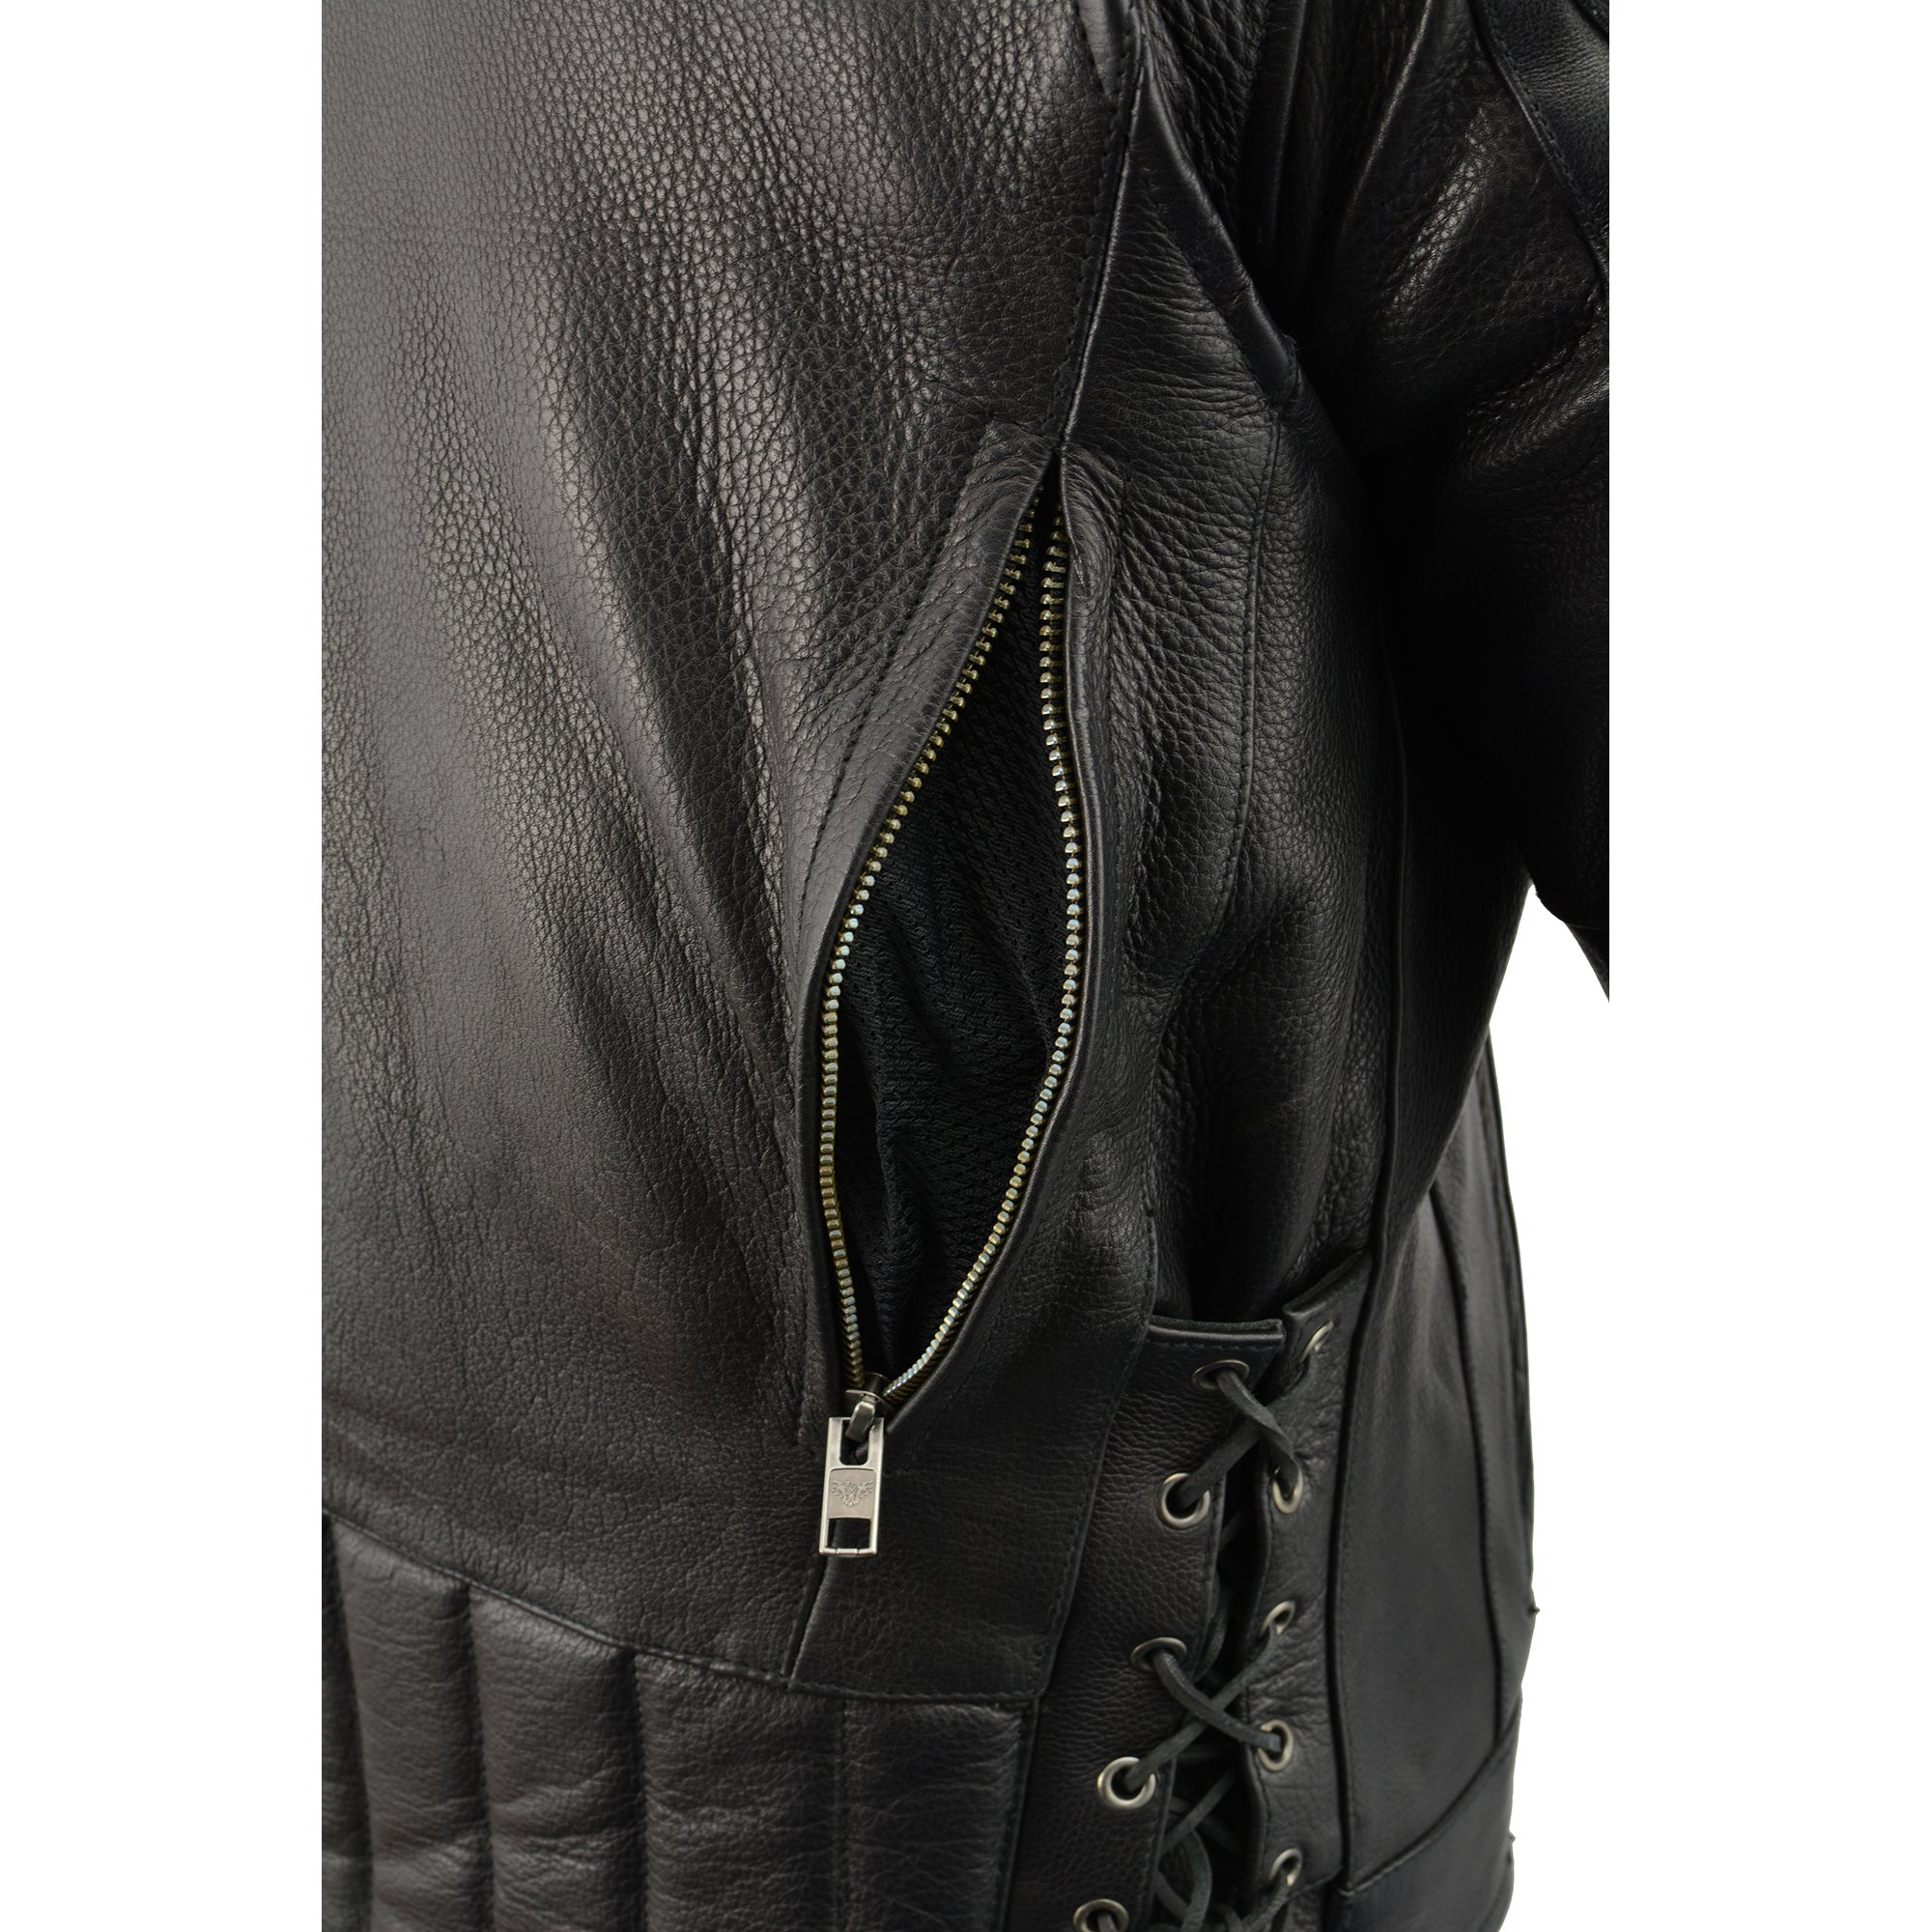 Milwaukee Leather Men's Side Lace Vented Scooter Jacket (Black, 5X-LargeTall) by Milwaukee Leather (Image #13)